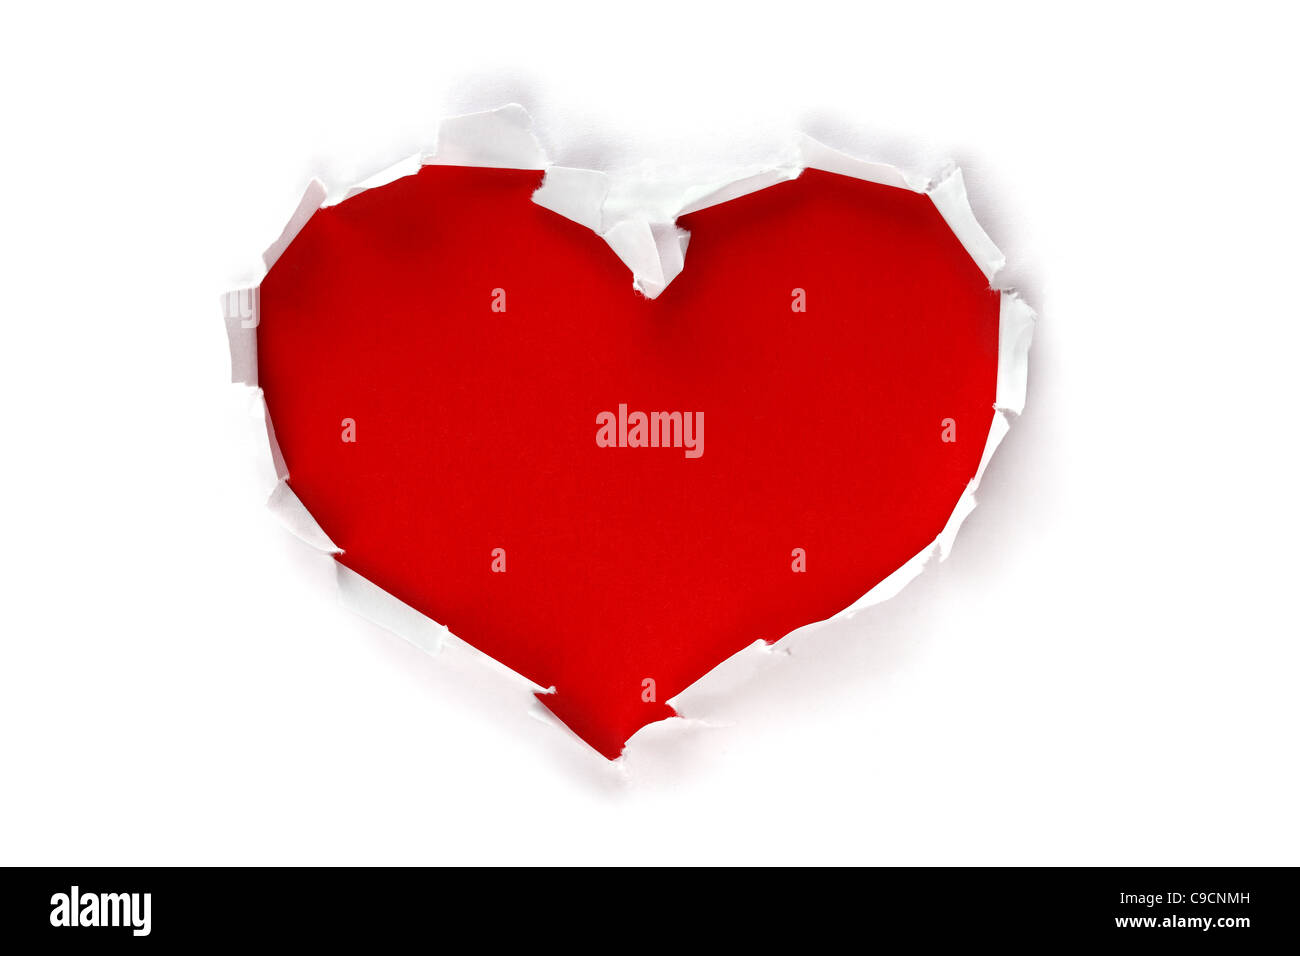 Heart shape hole through paper - Stock Image